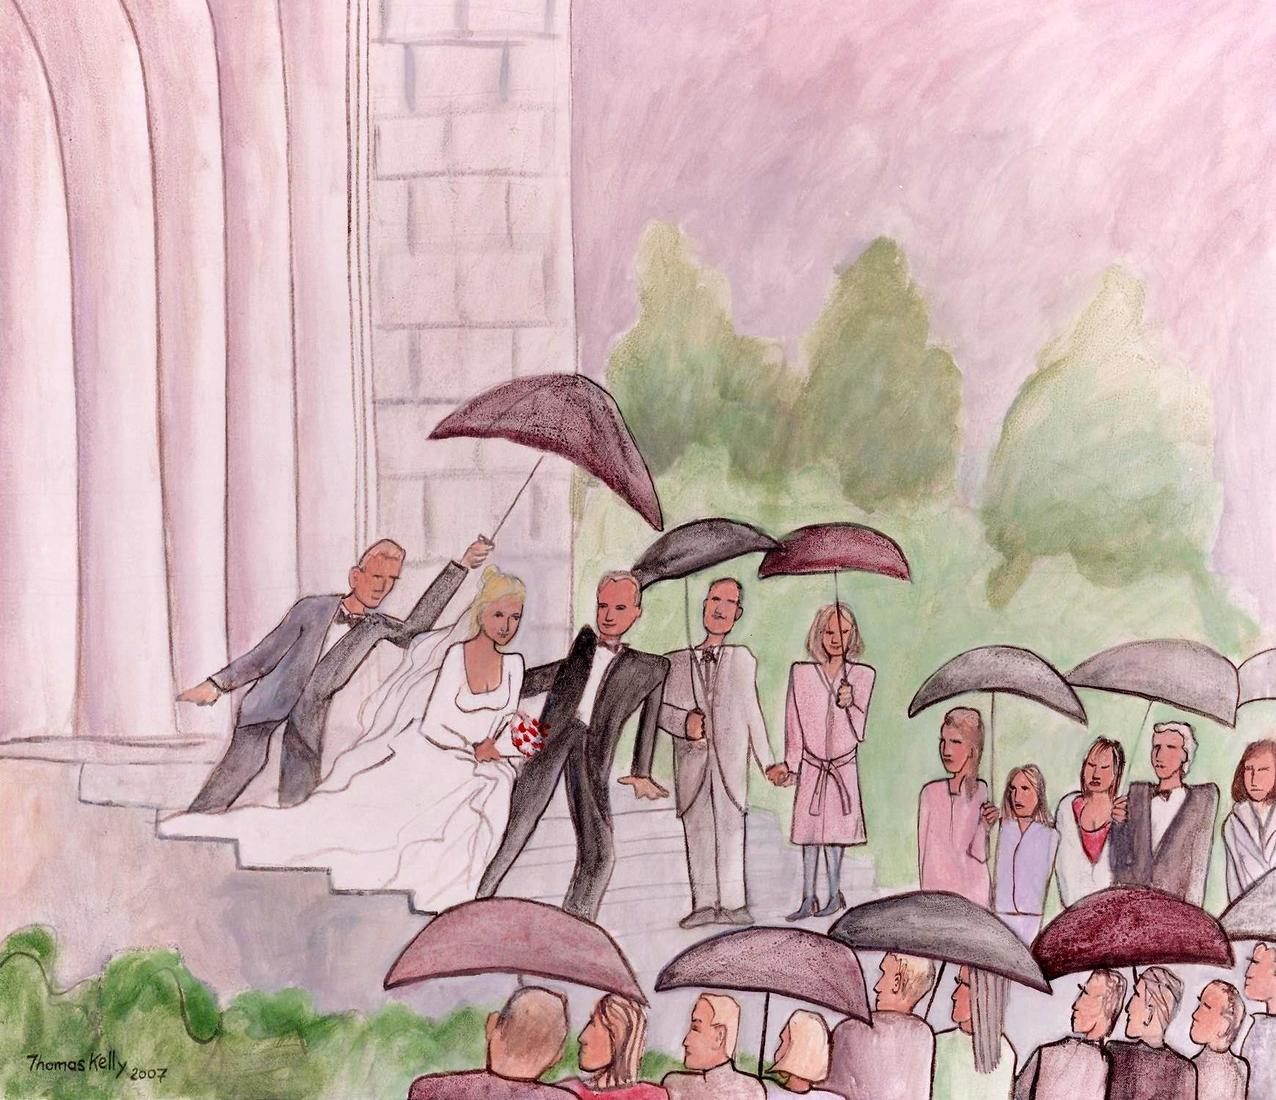 Series: Very Superstitious Rain on the Wedding Day